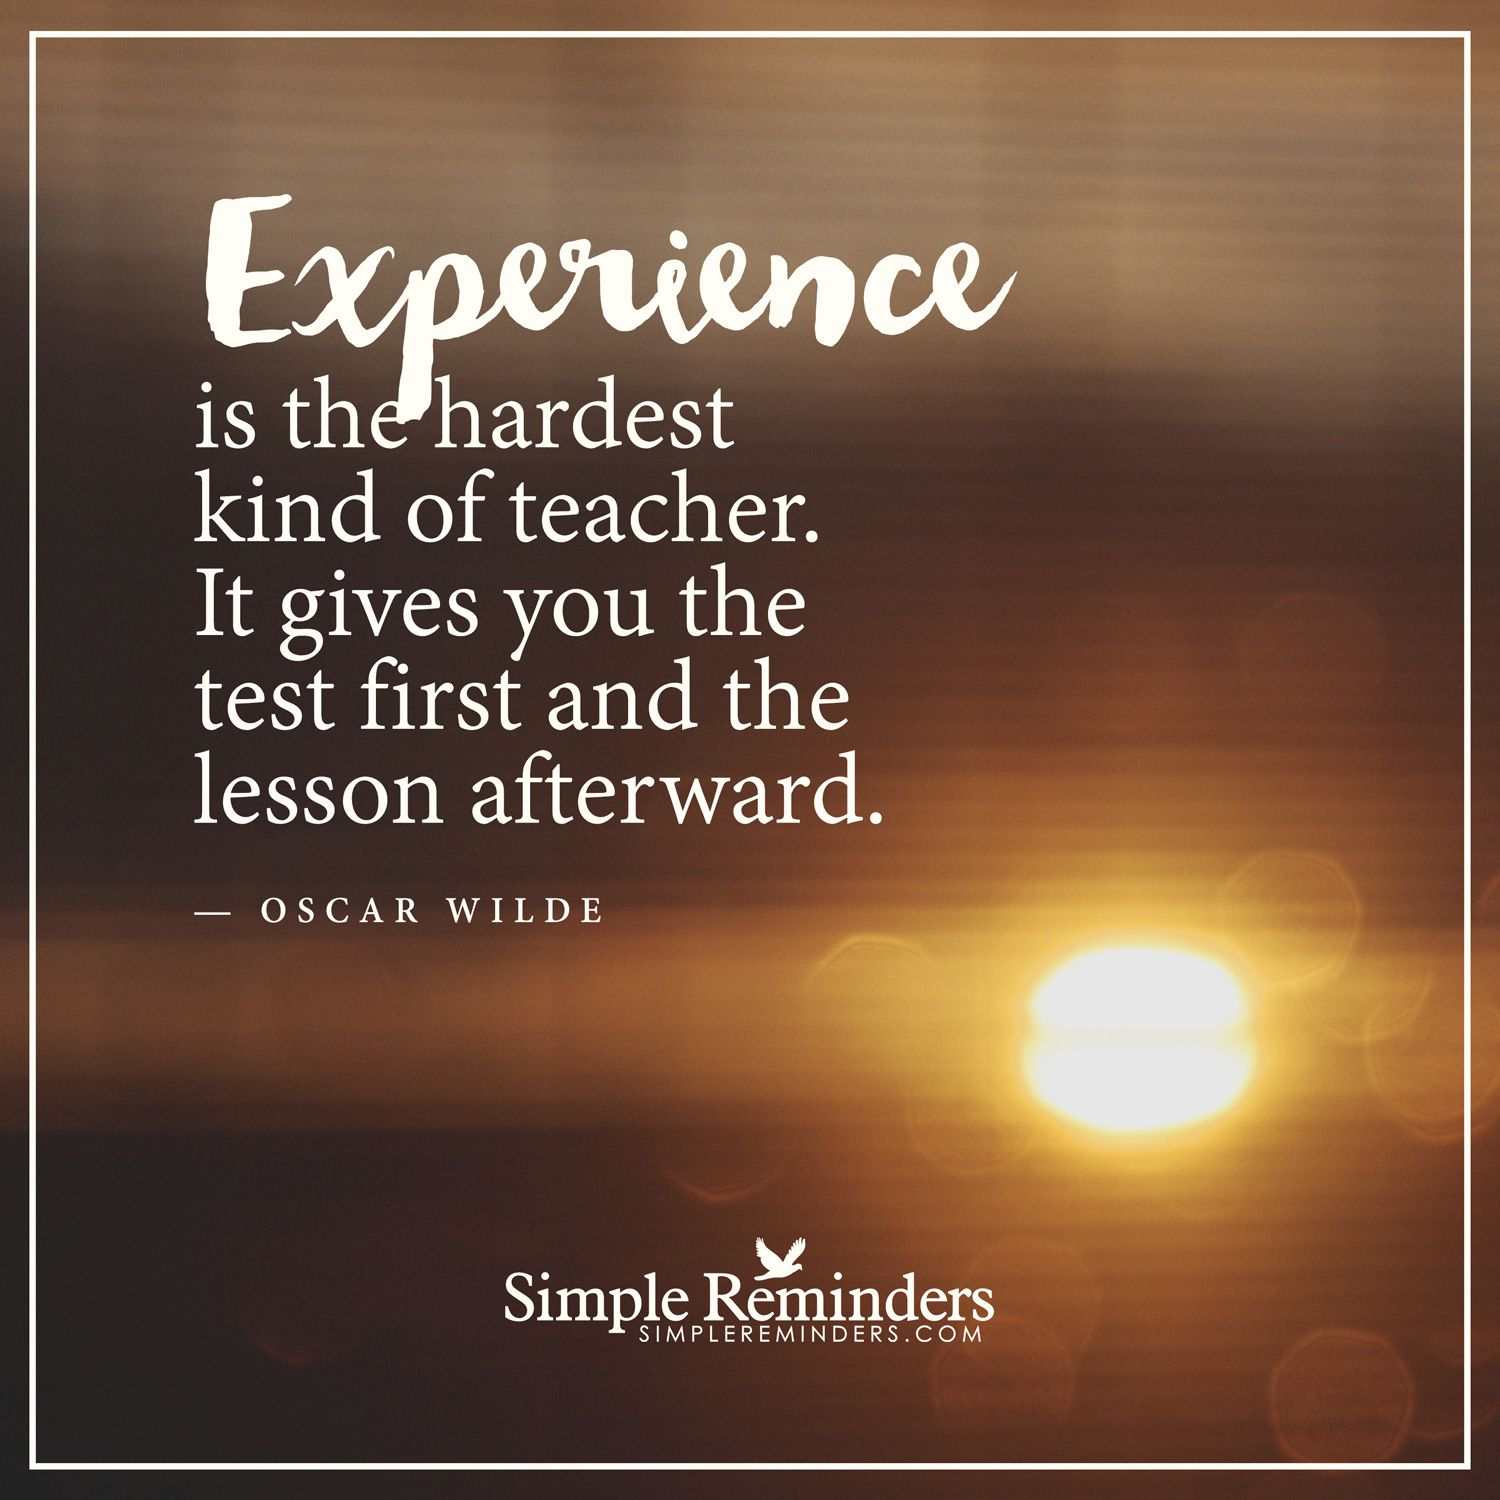 Famous Quotes About Life Lessons 2: Experience Is The Hardest Kind Of Teacher Experience Is